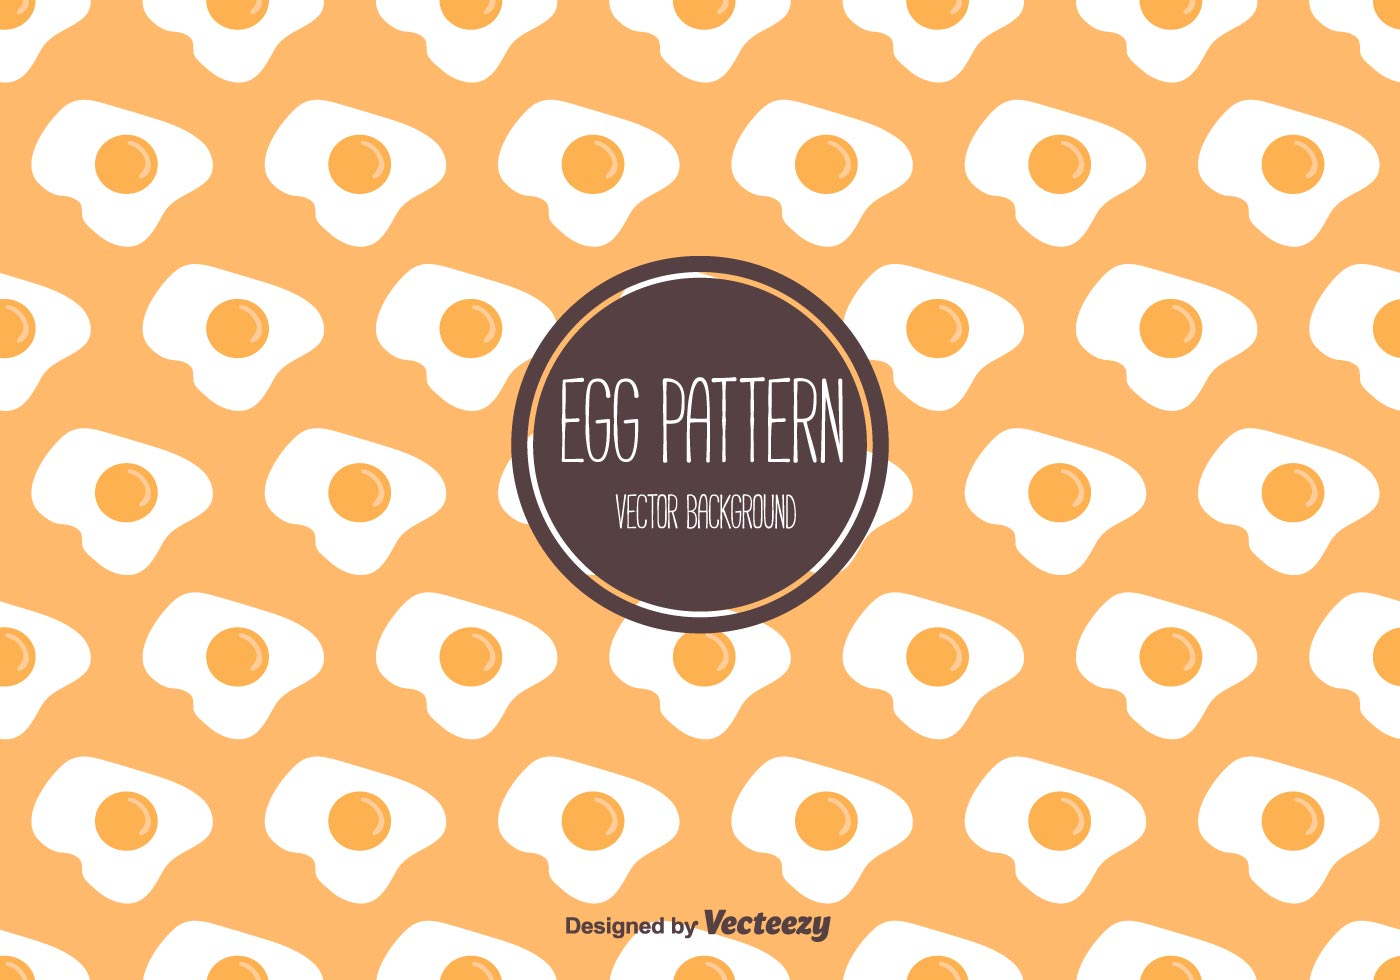 Egg Pattern Free Vector Art